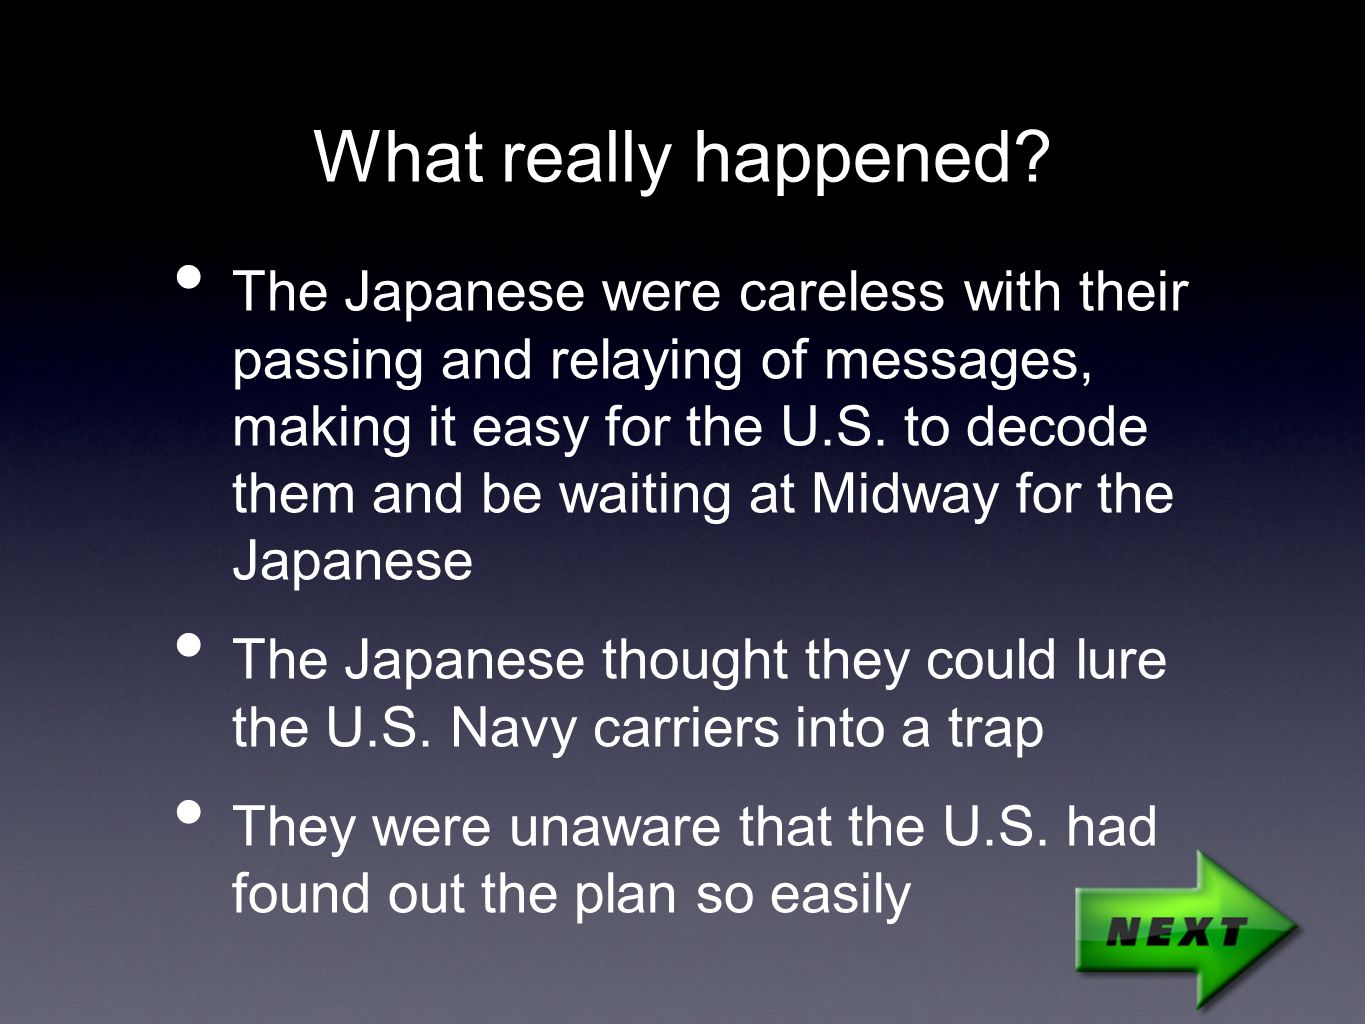 What really happened? The Japanese were careless with their passing and relaying of messages, making it easy for the U.S. to decode them and be waitin